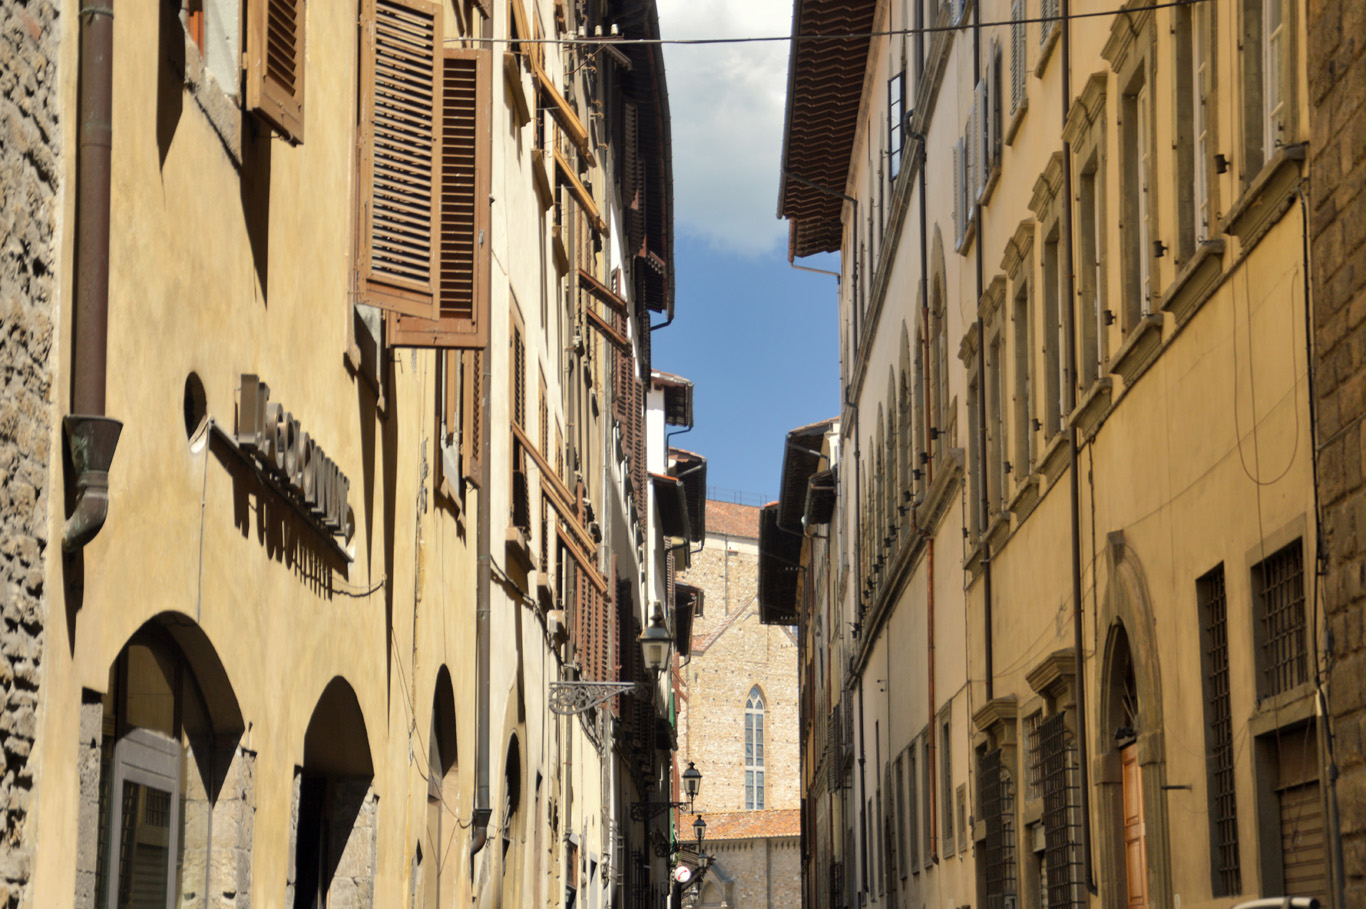 A typical narrow street in Florence